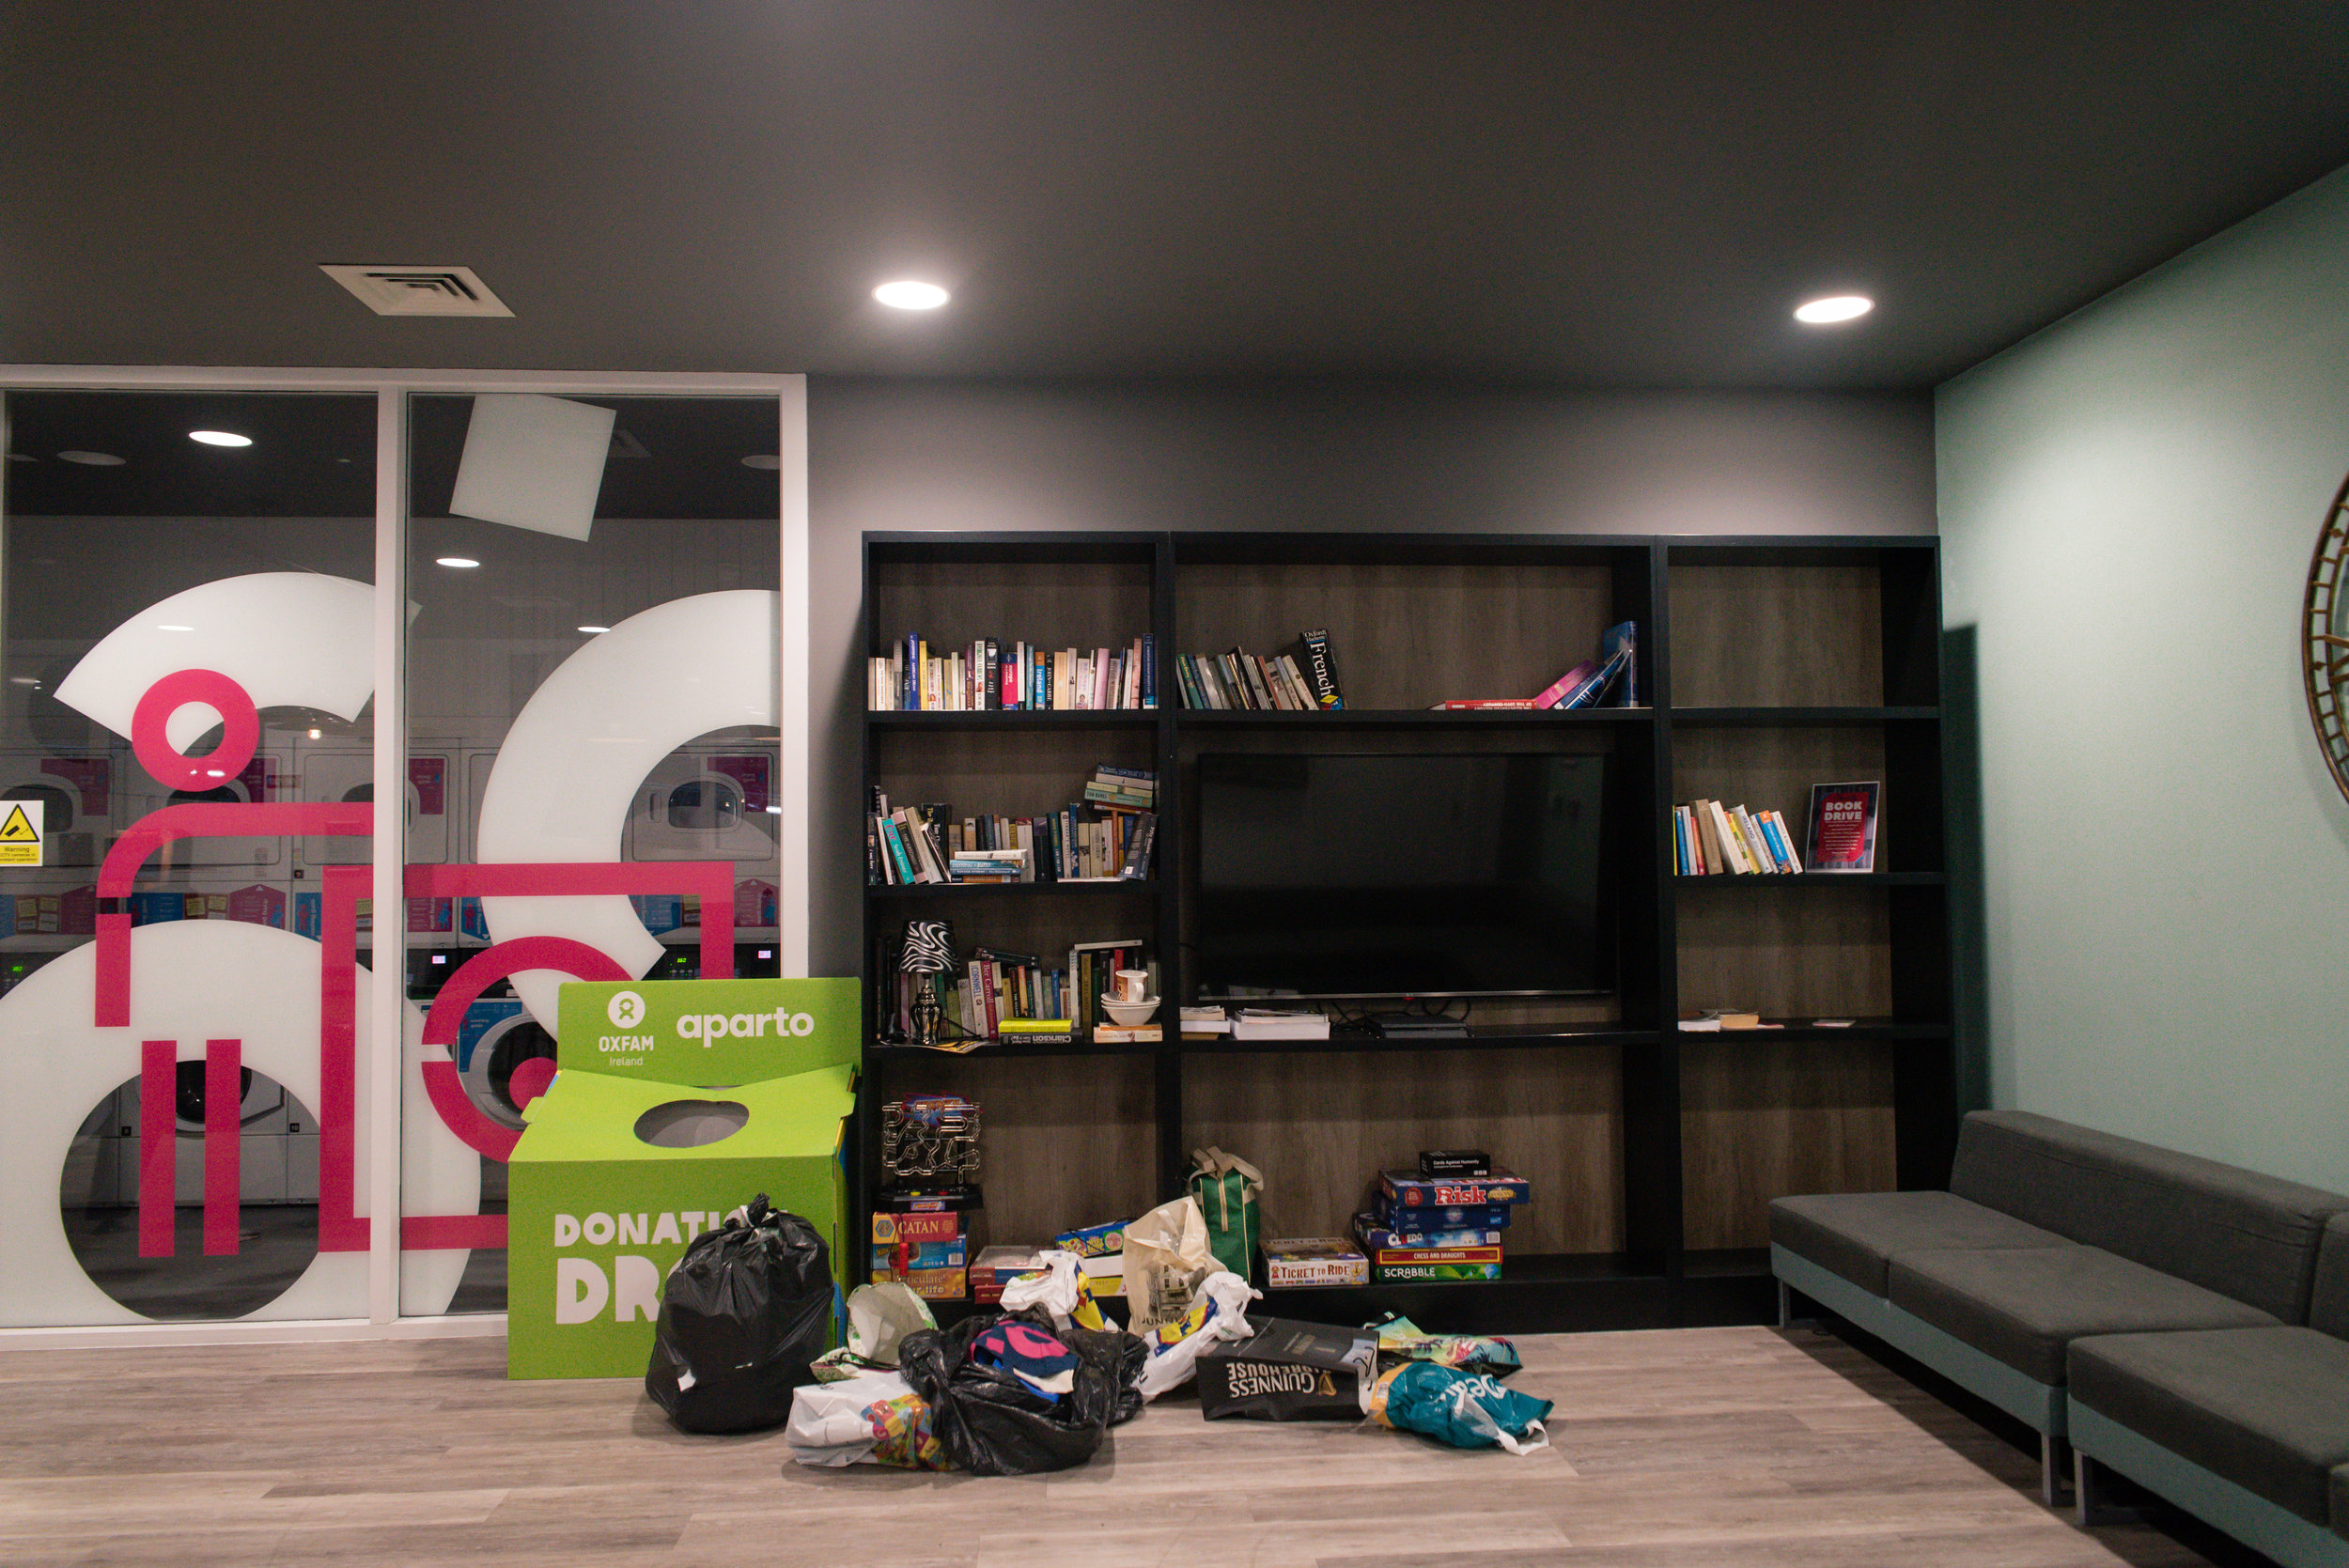 The laundry and hang out area.